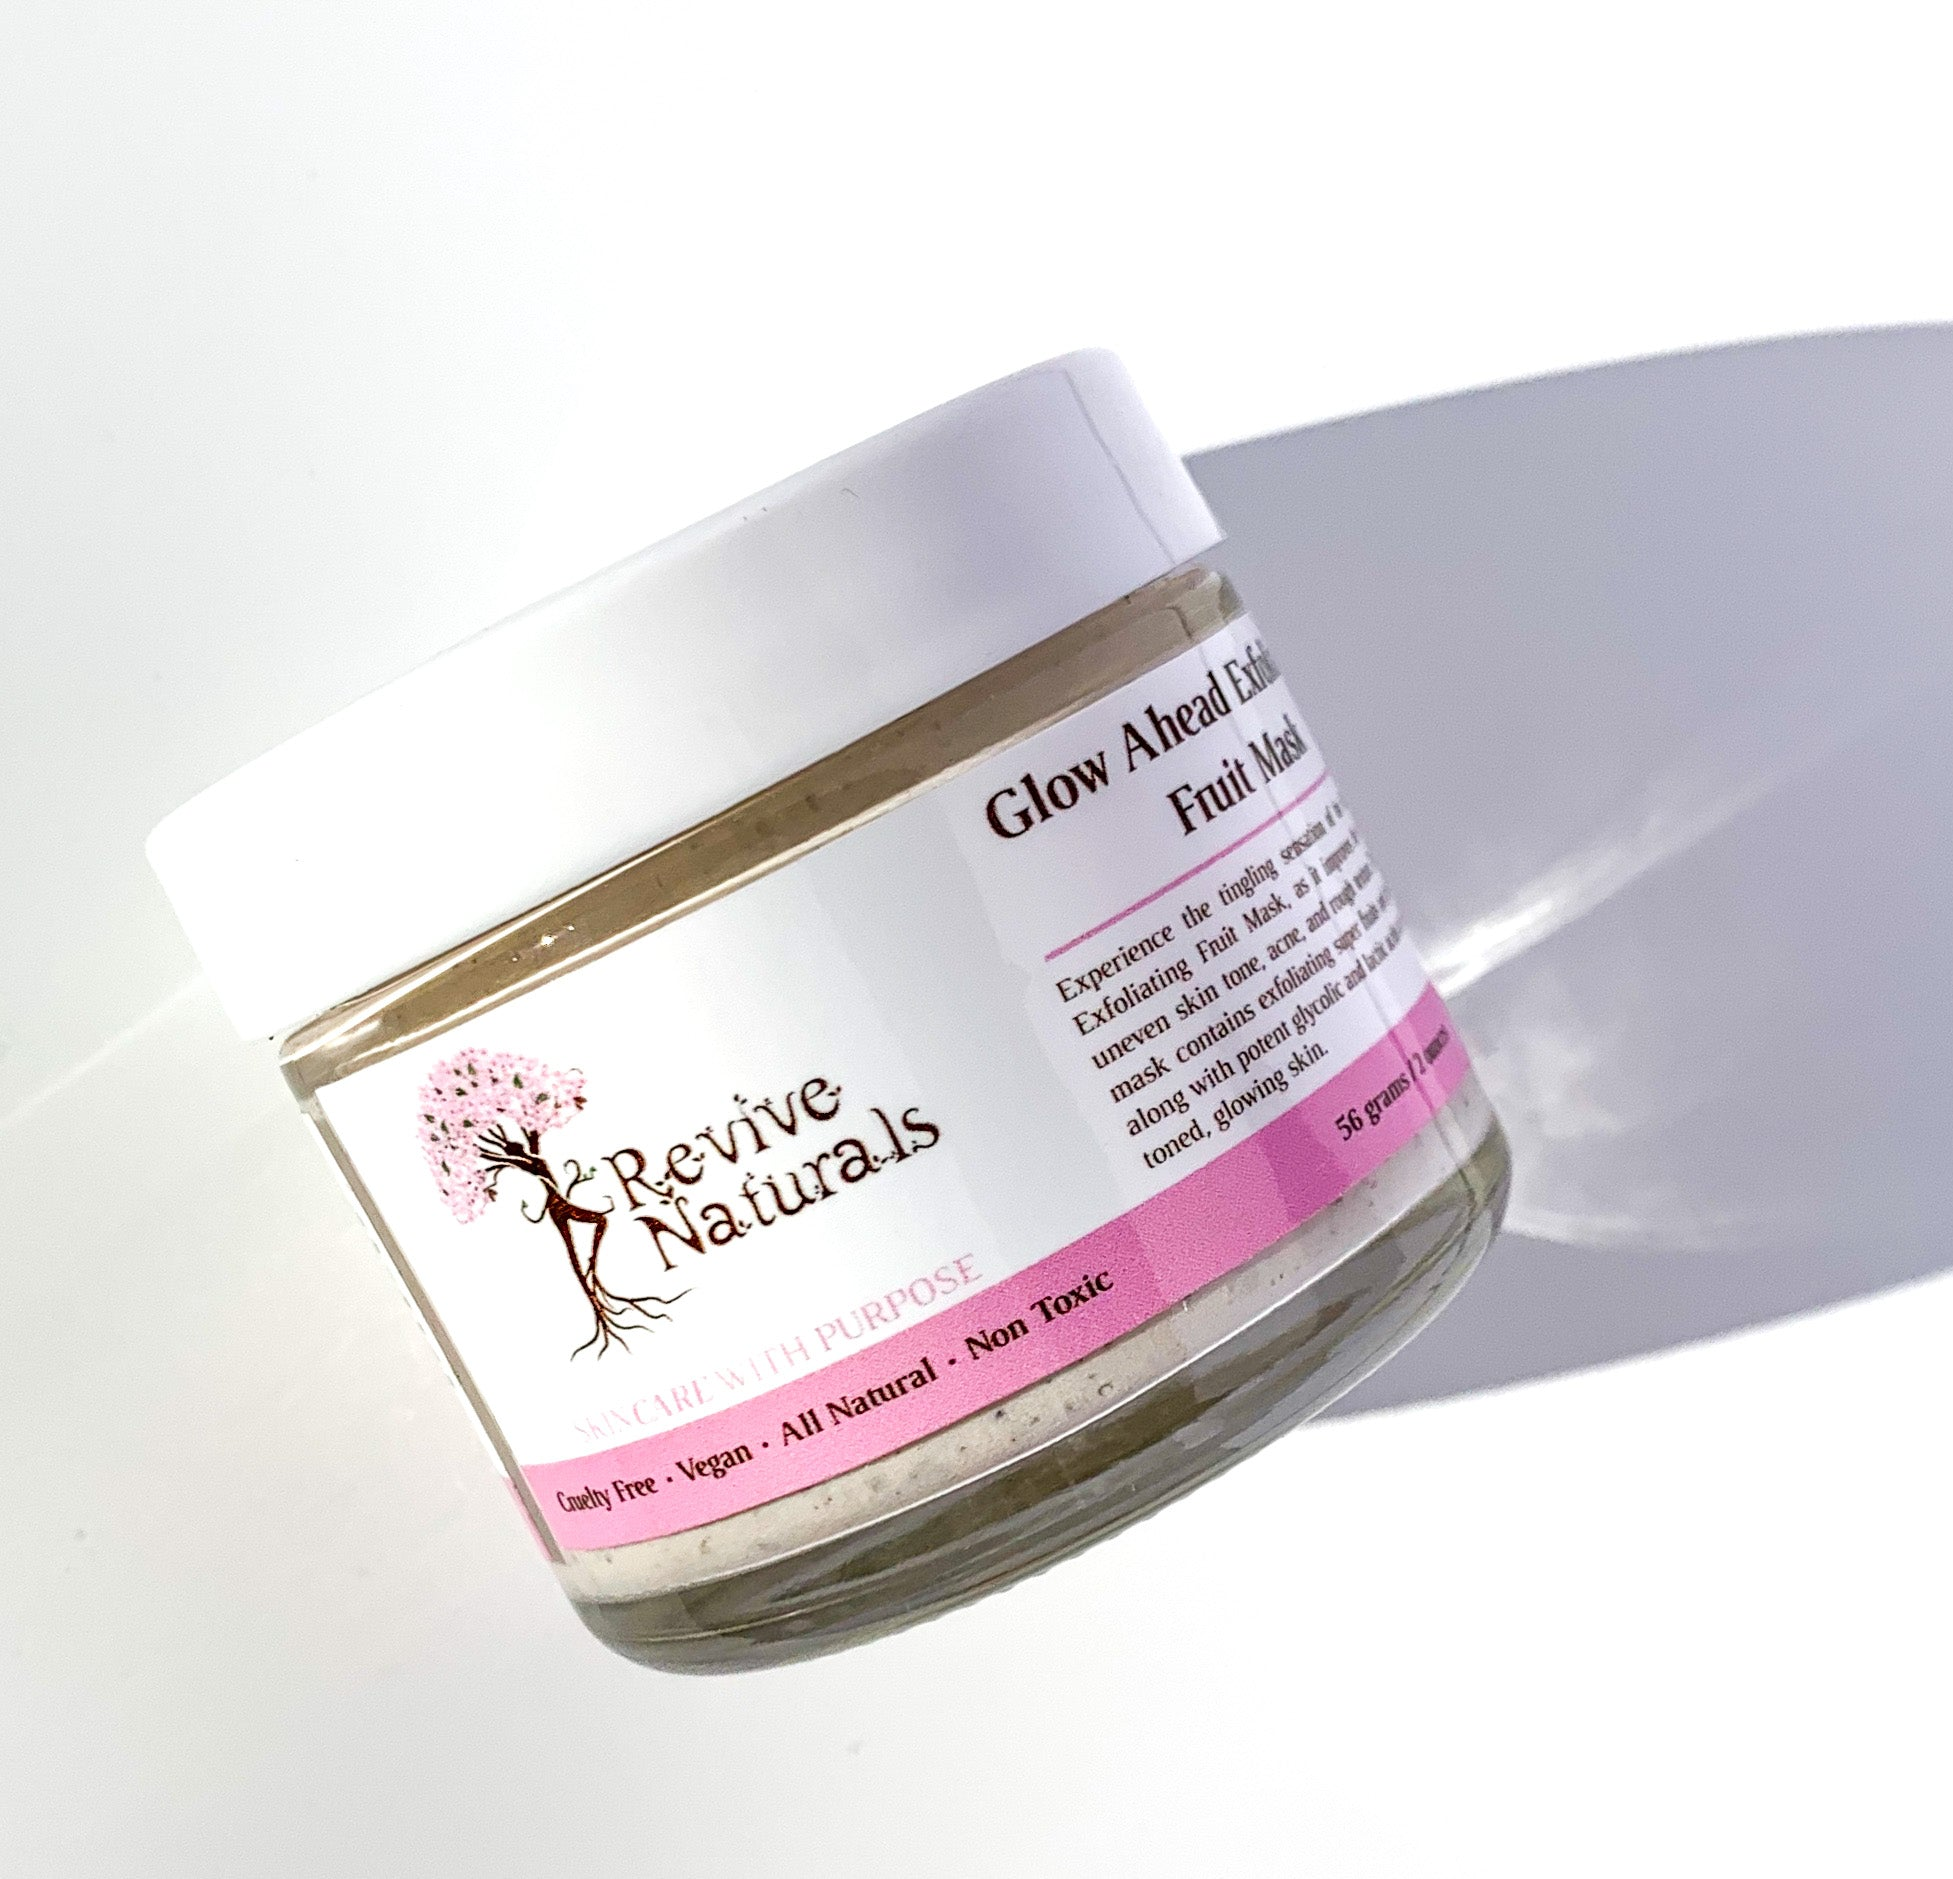 Glow Ahead Exfoliating Fruit Mask